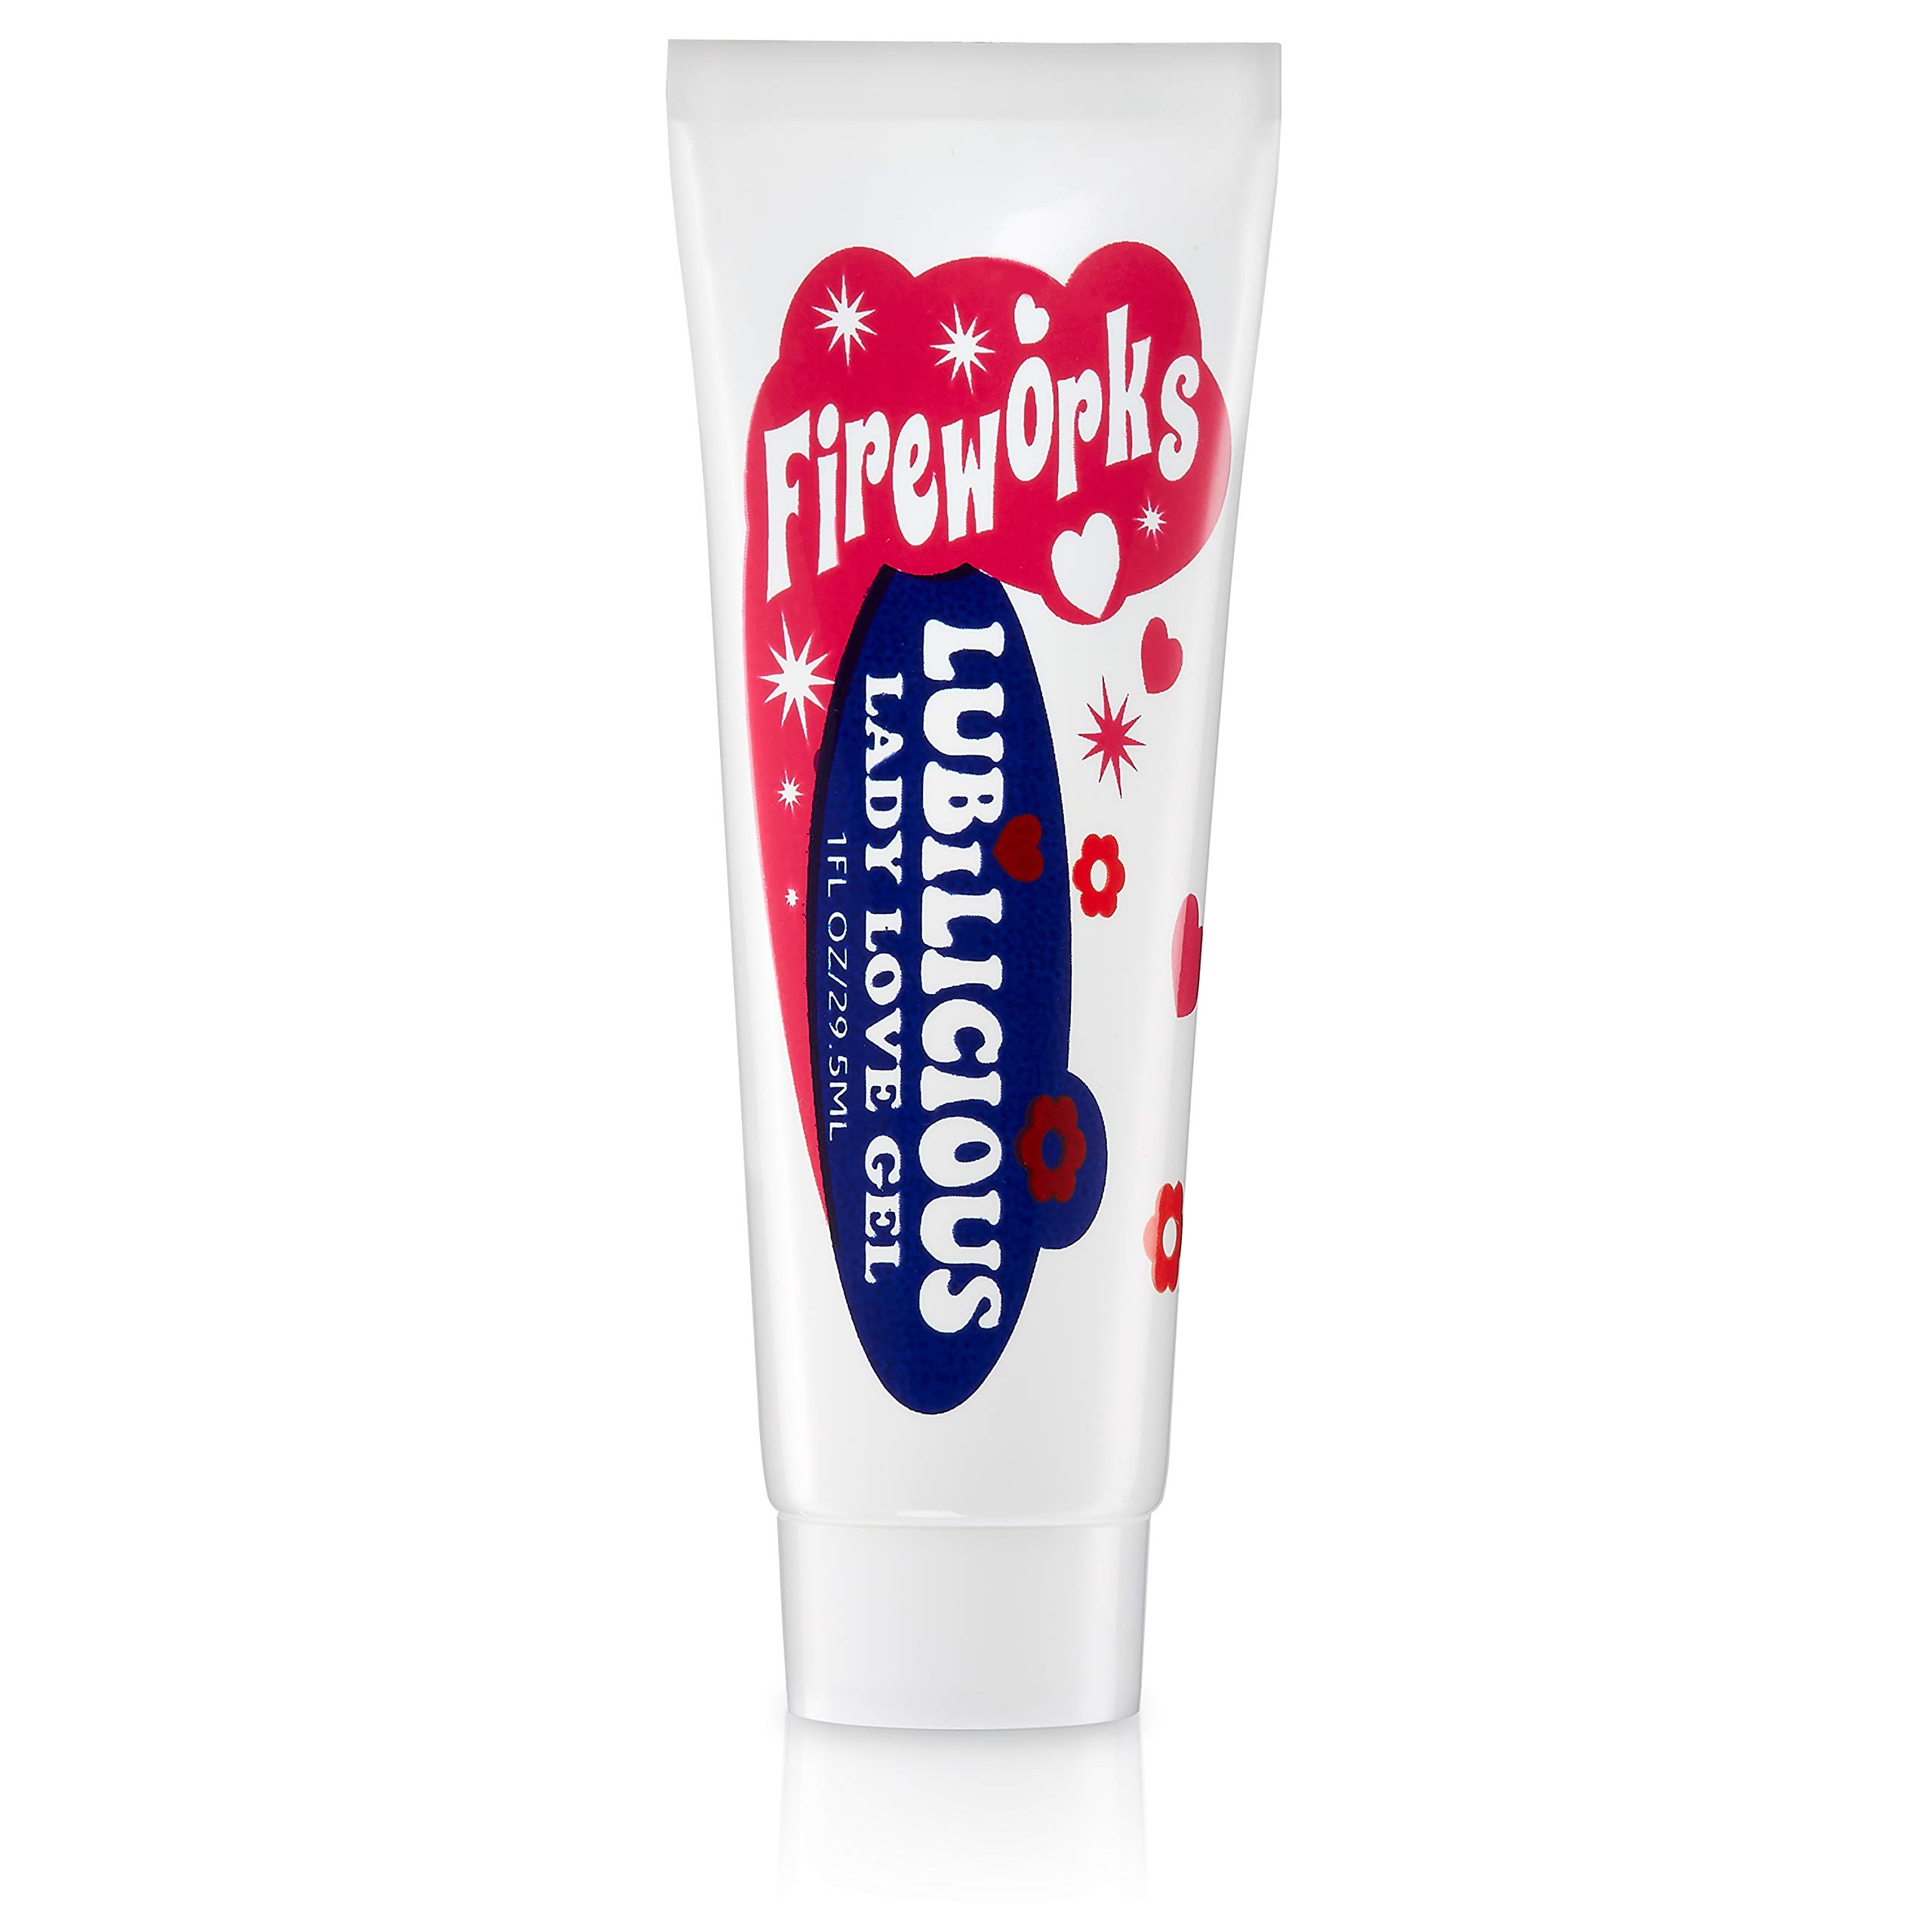 Lubilicious Fireworks Lady Love Gel | Enhances Female Arousal & Libido | Heightened Orgasm | Natural Stimulation for Maximum Climax | Personal Lubricant | Warming & Cooling (30 ml)